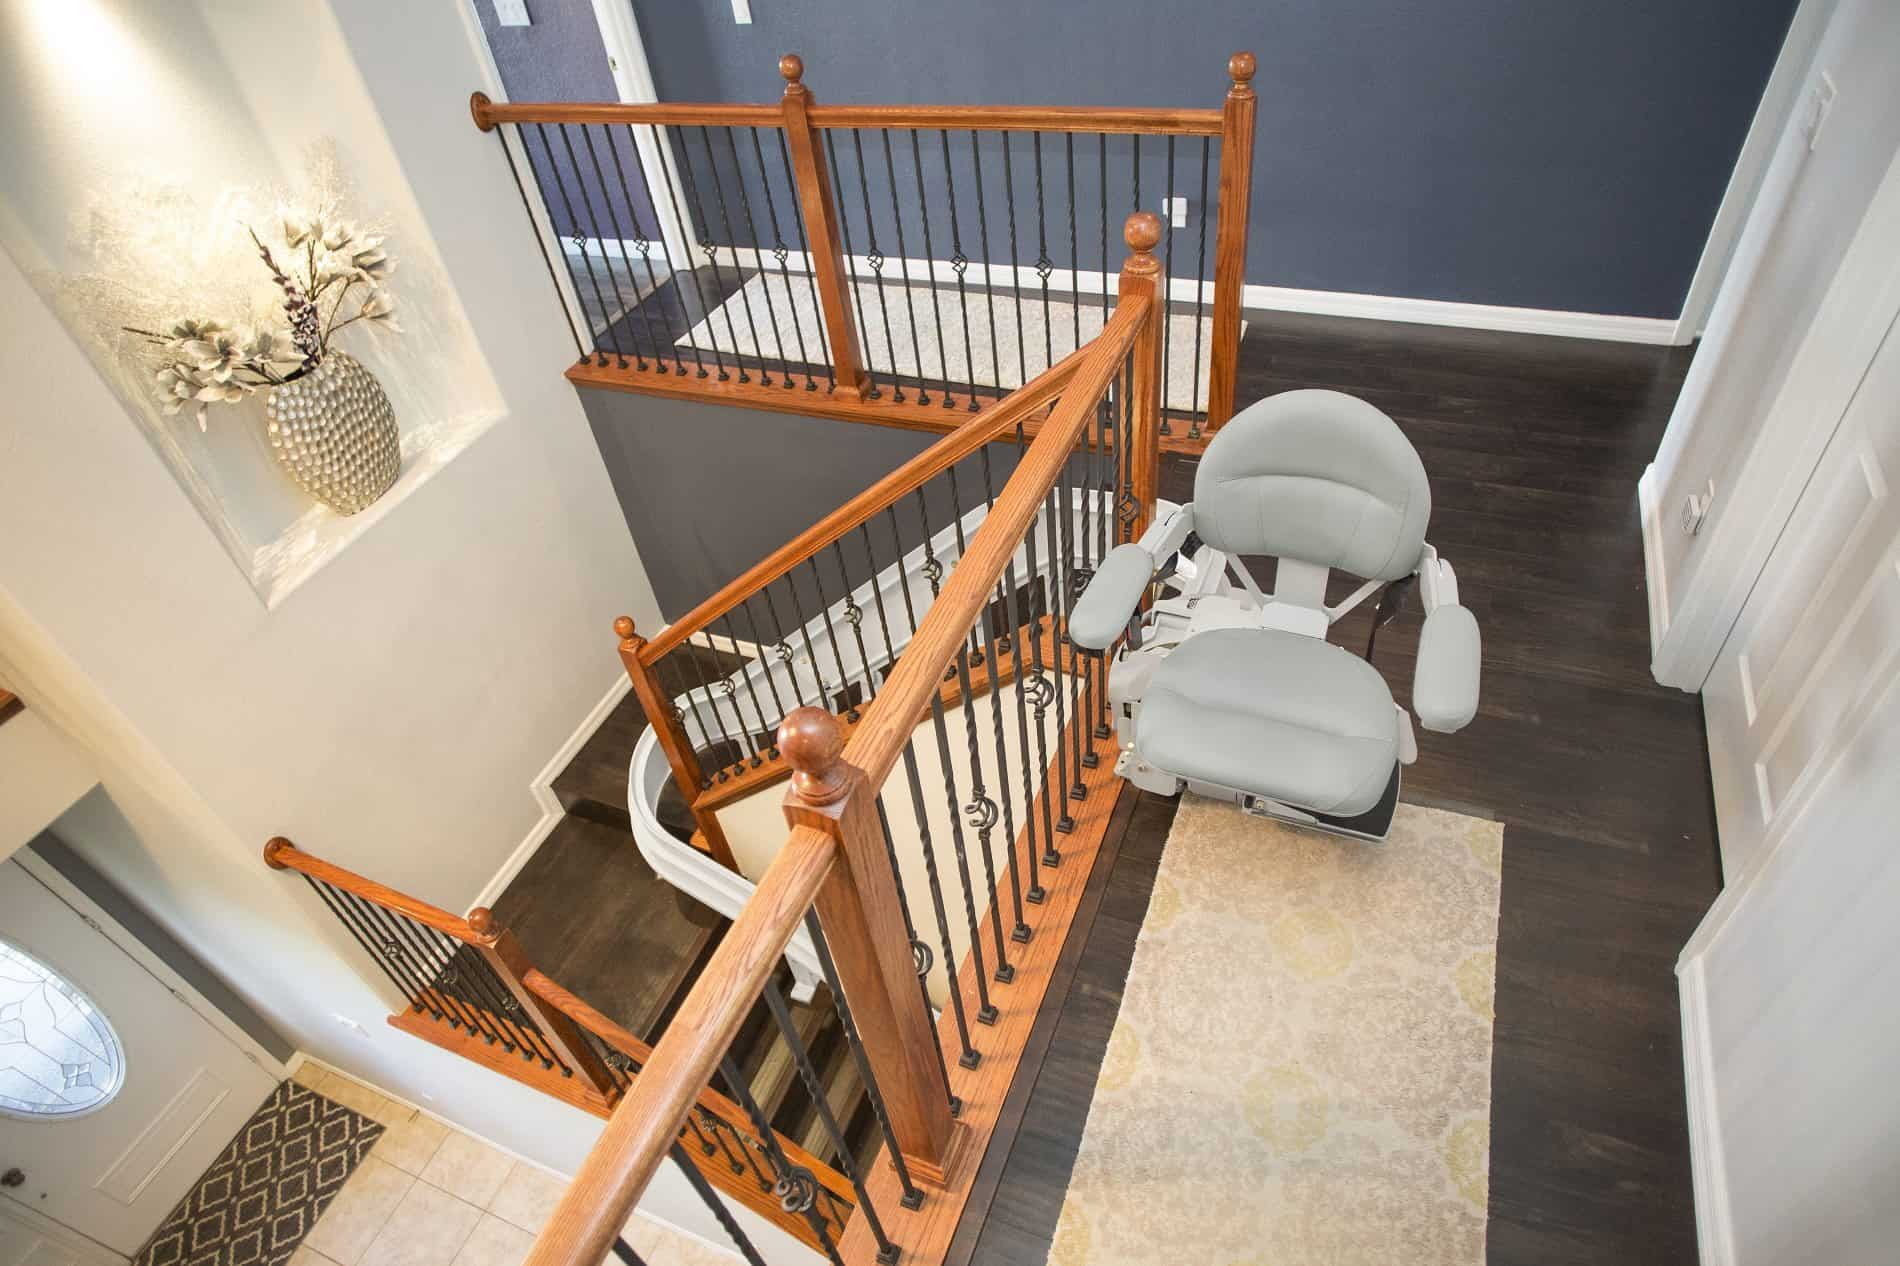 Practical Do's and Don'ts to Review Before Purchasing a Stairlift